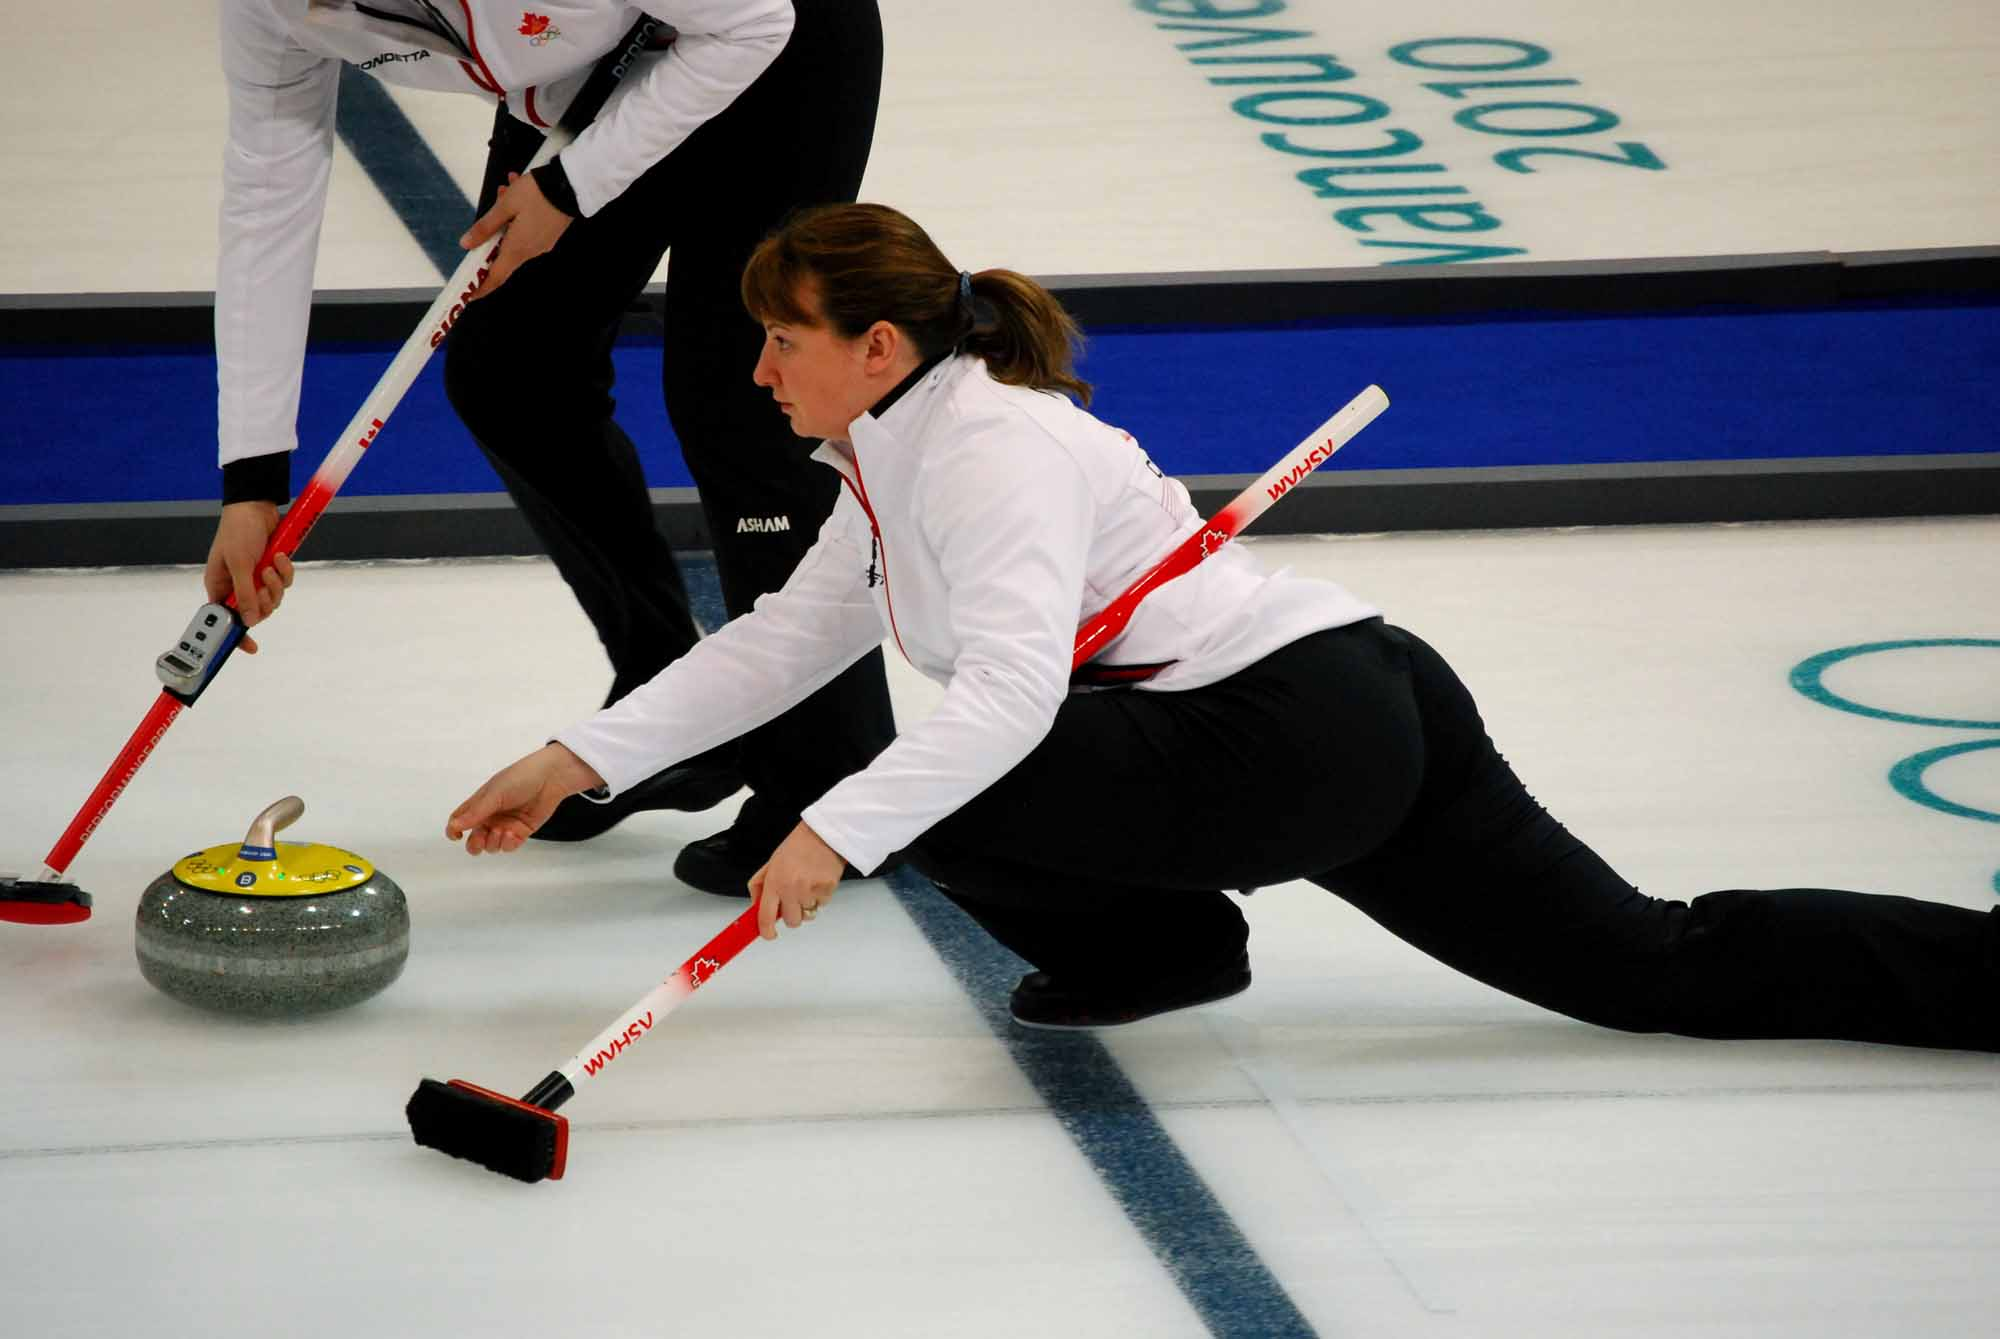 Curling, Vancouver 2010 Olympic